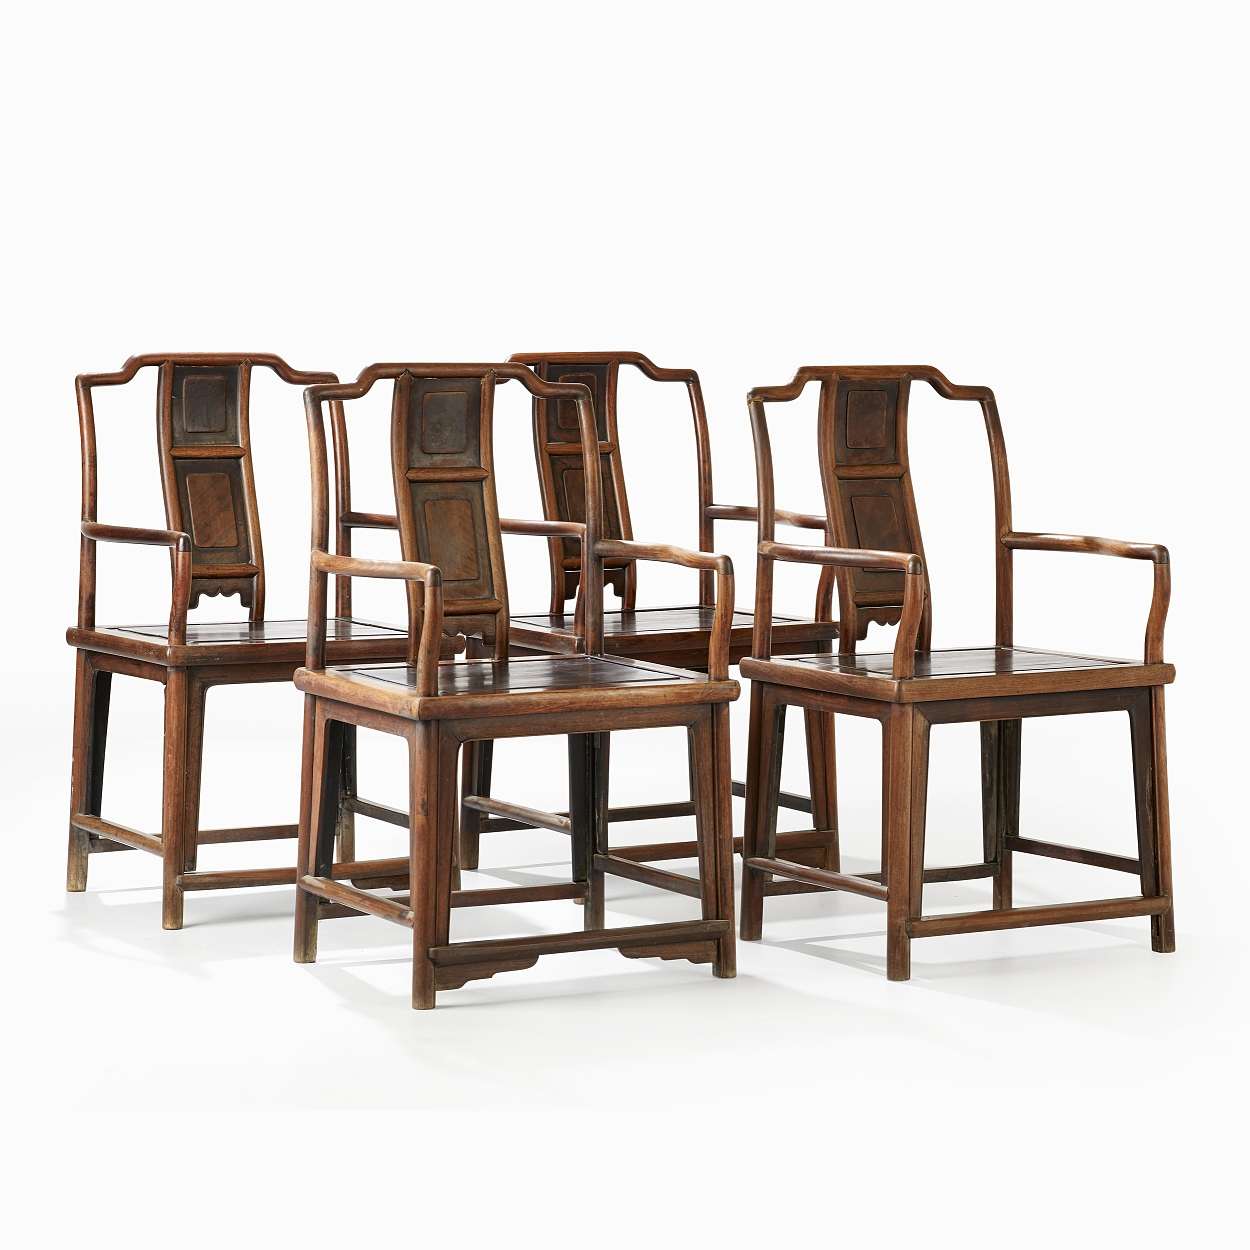 A Set of Four Armchairs